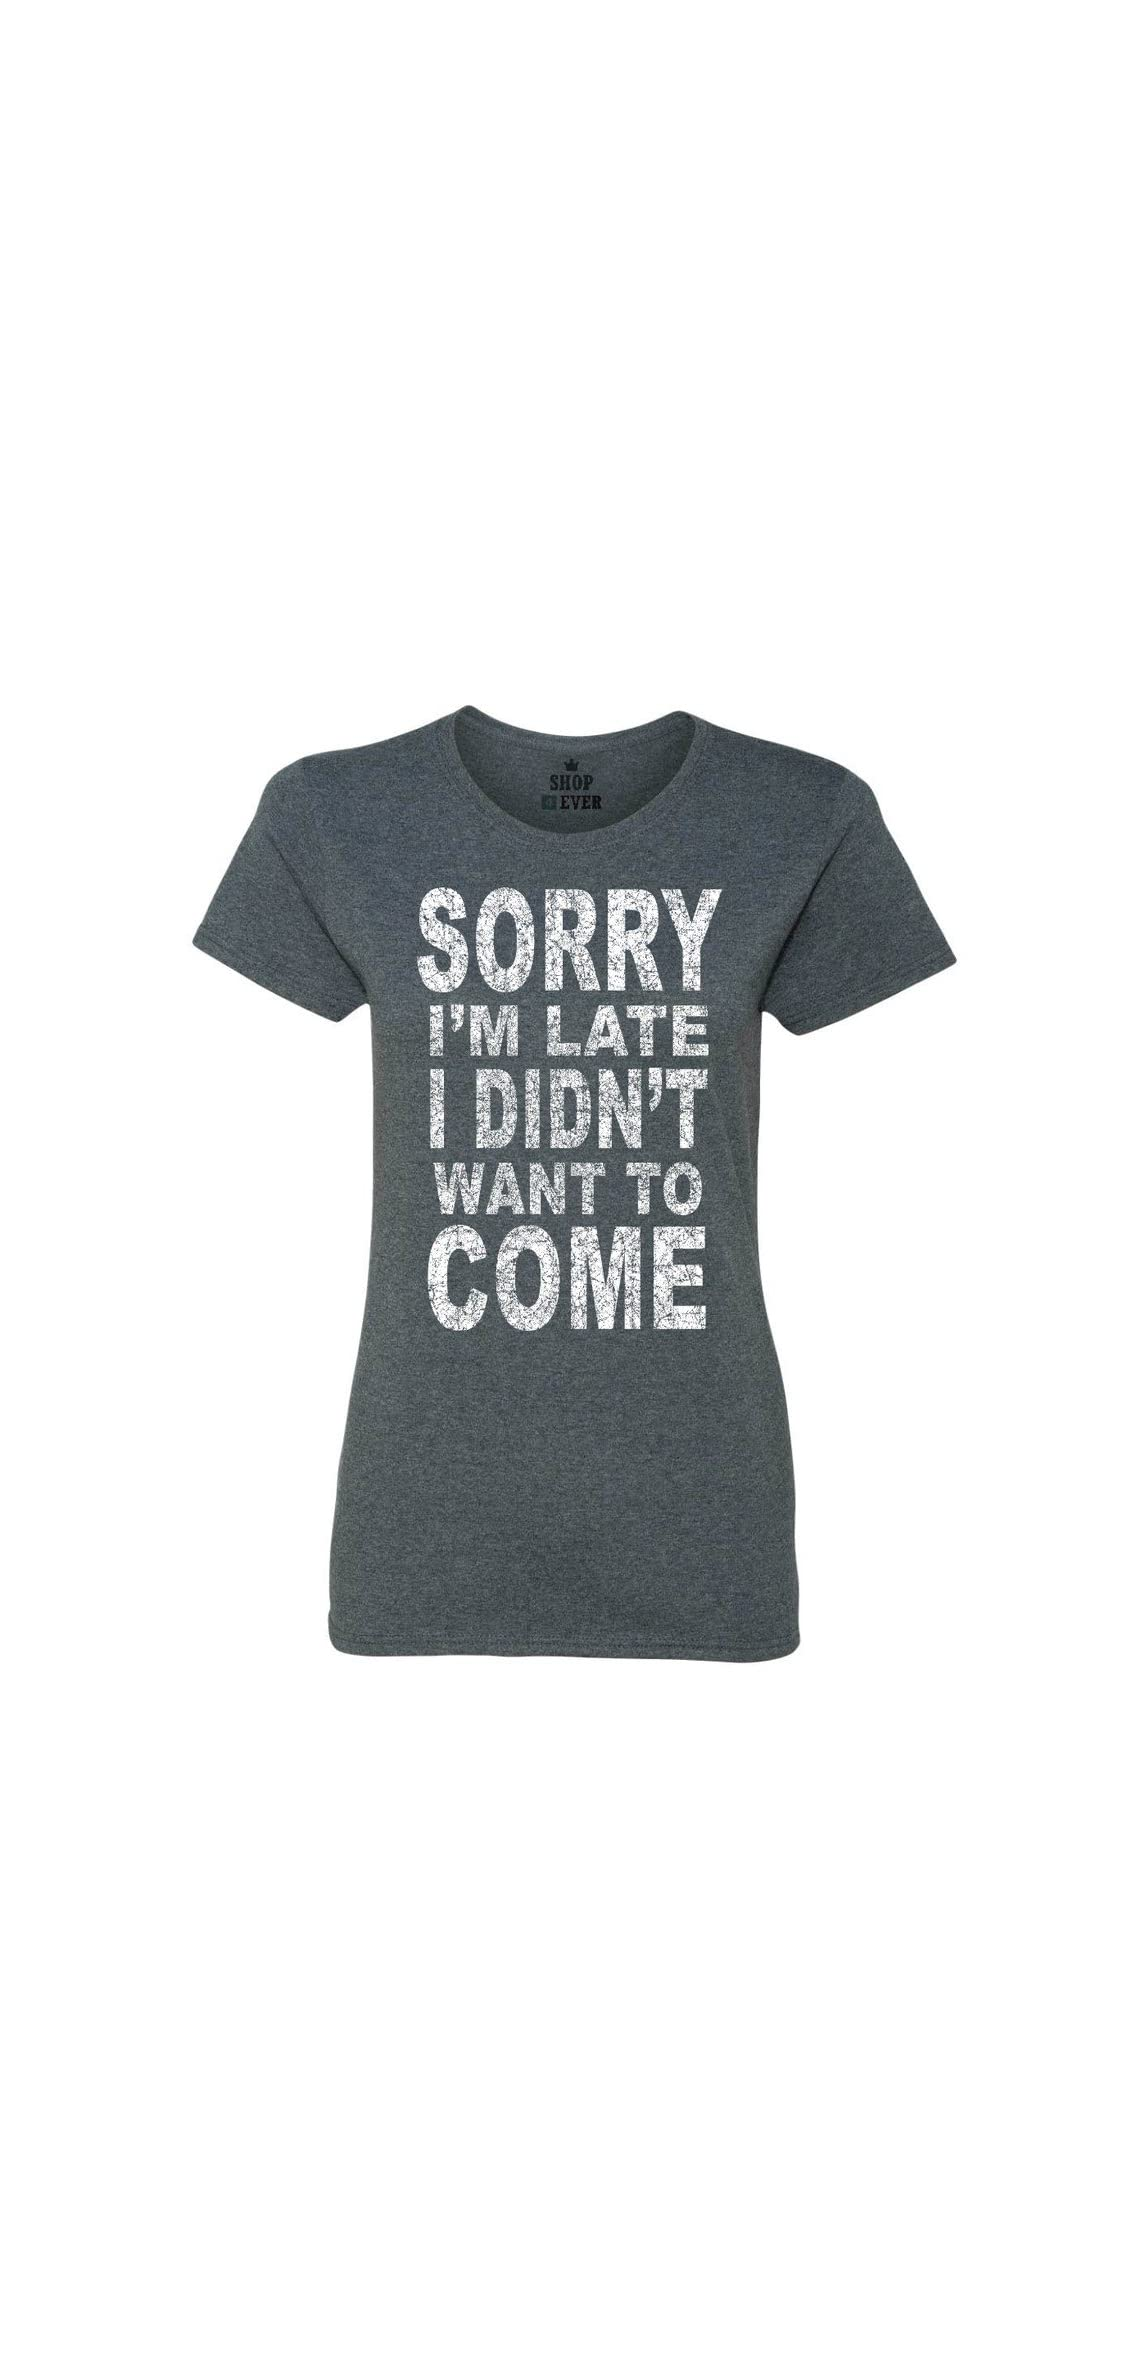 Sorry I'm Late I Didn't Want To Come Women's T-shirt